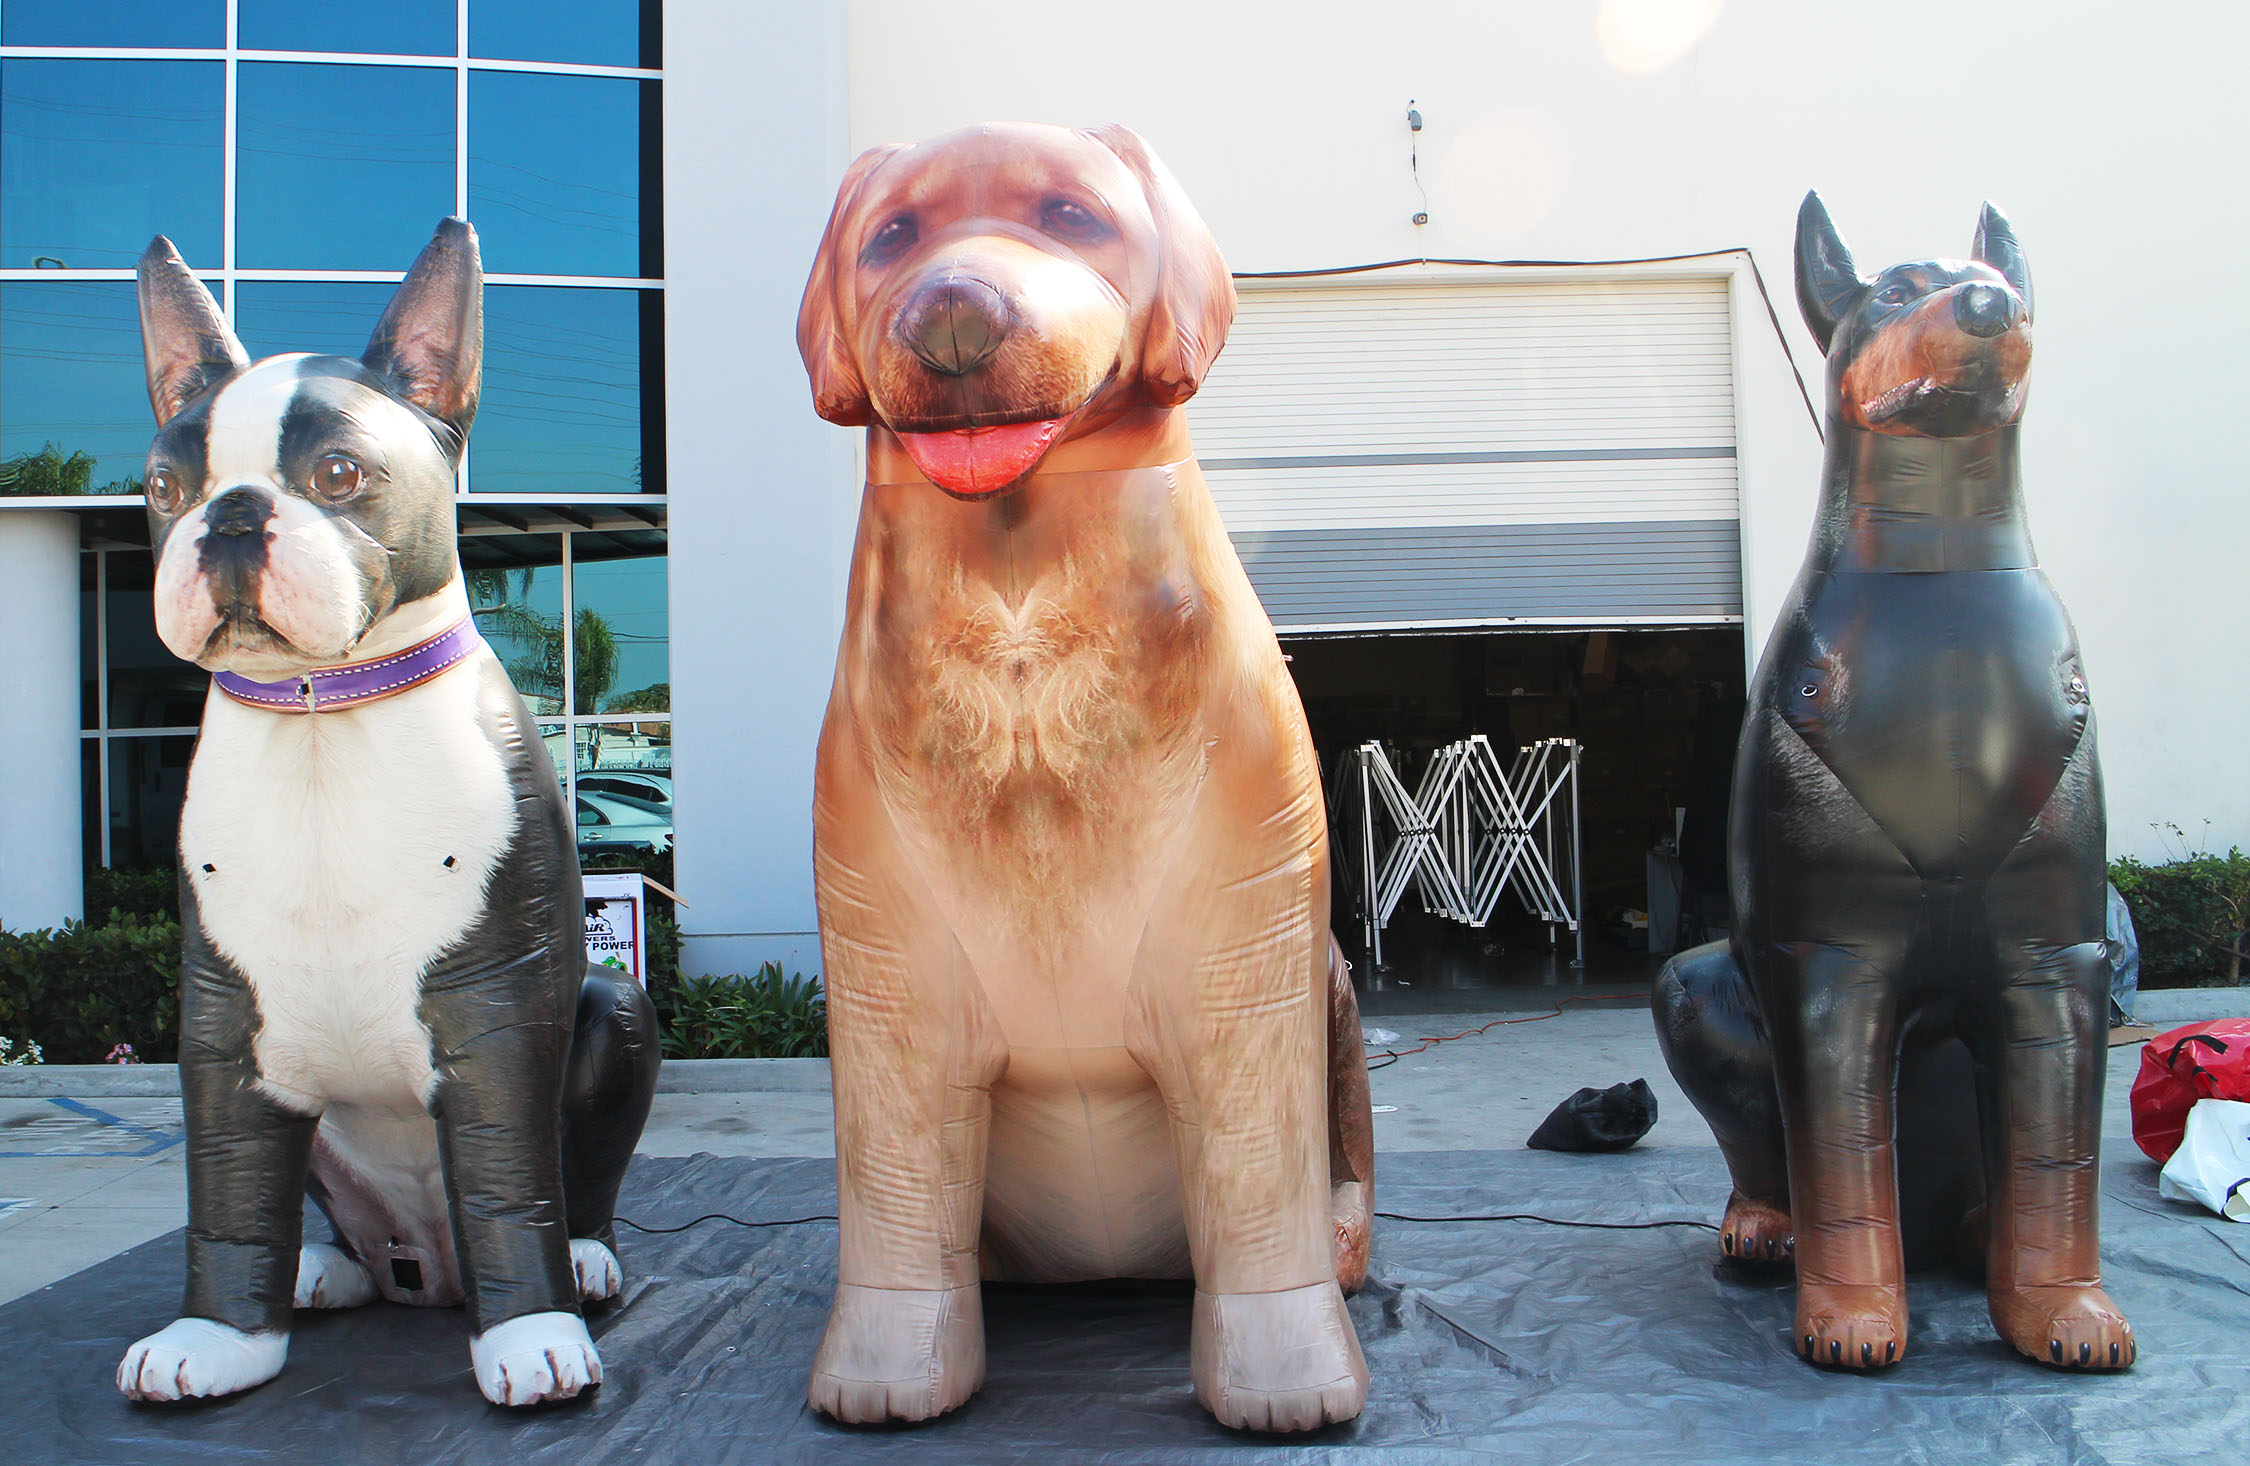 inflatable dogs in a row